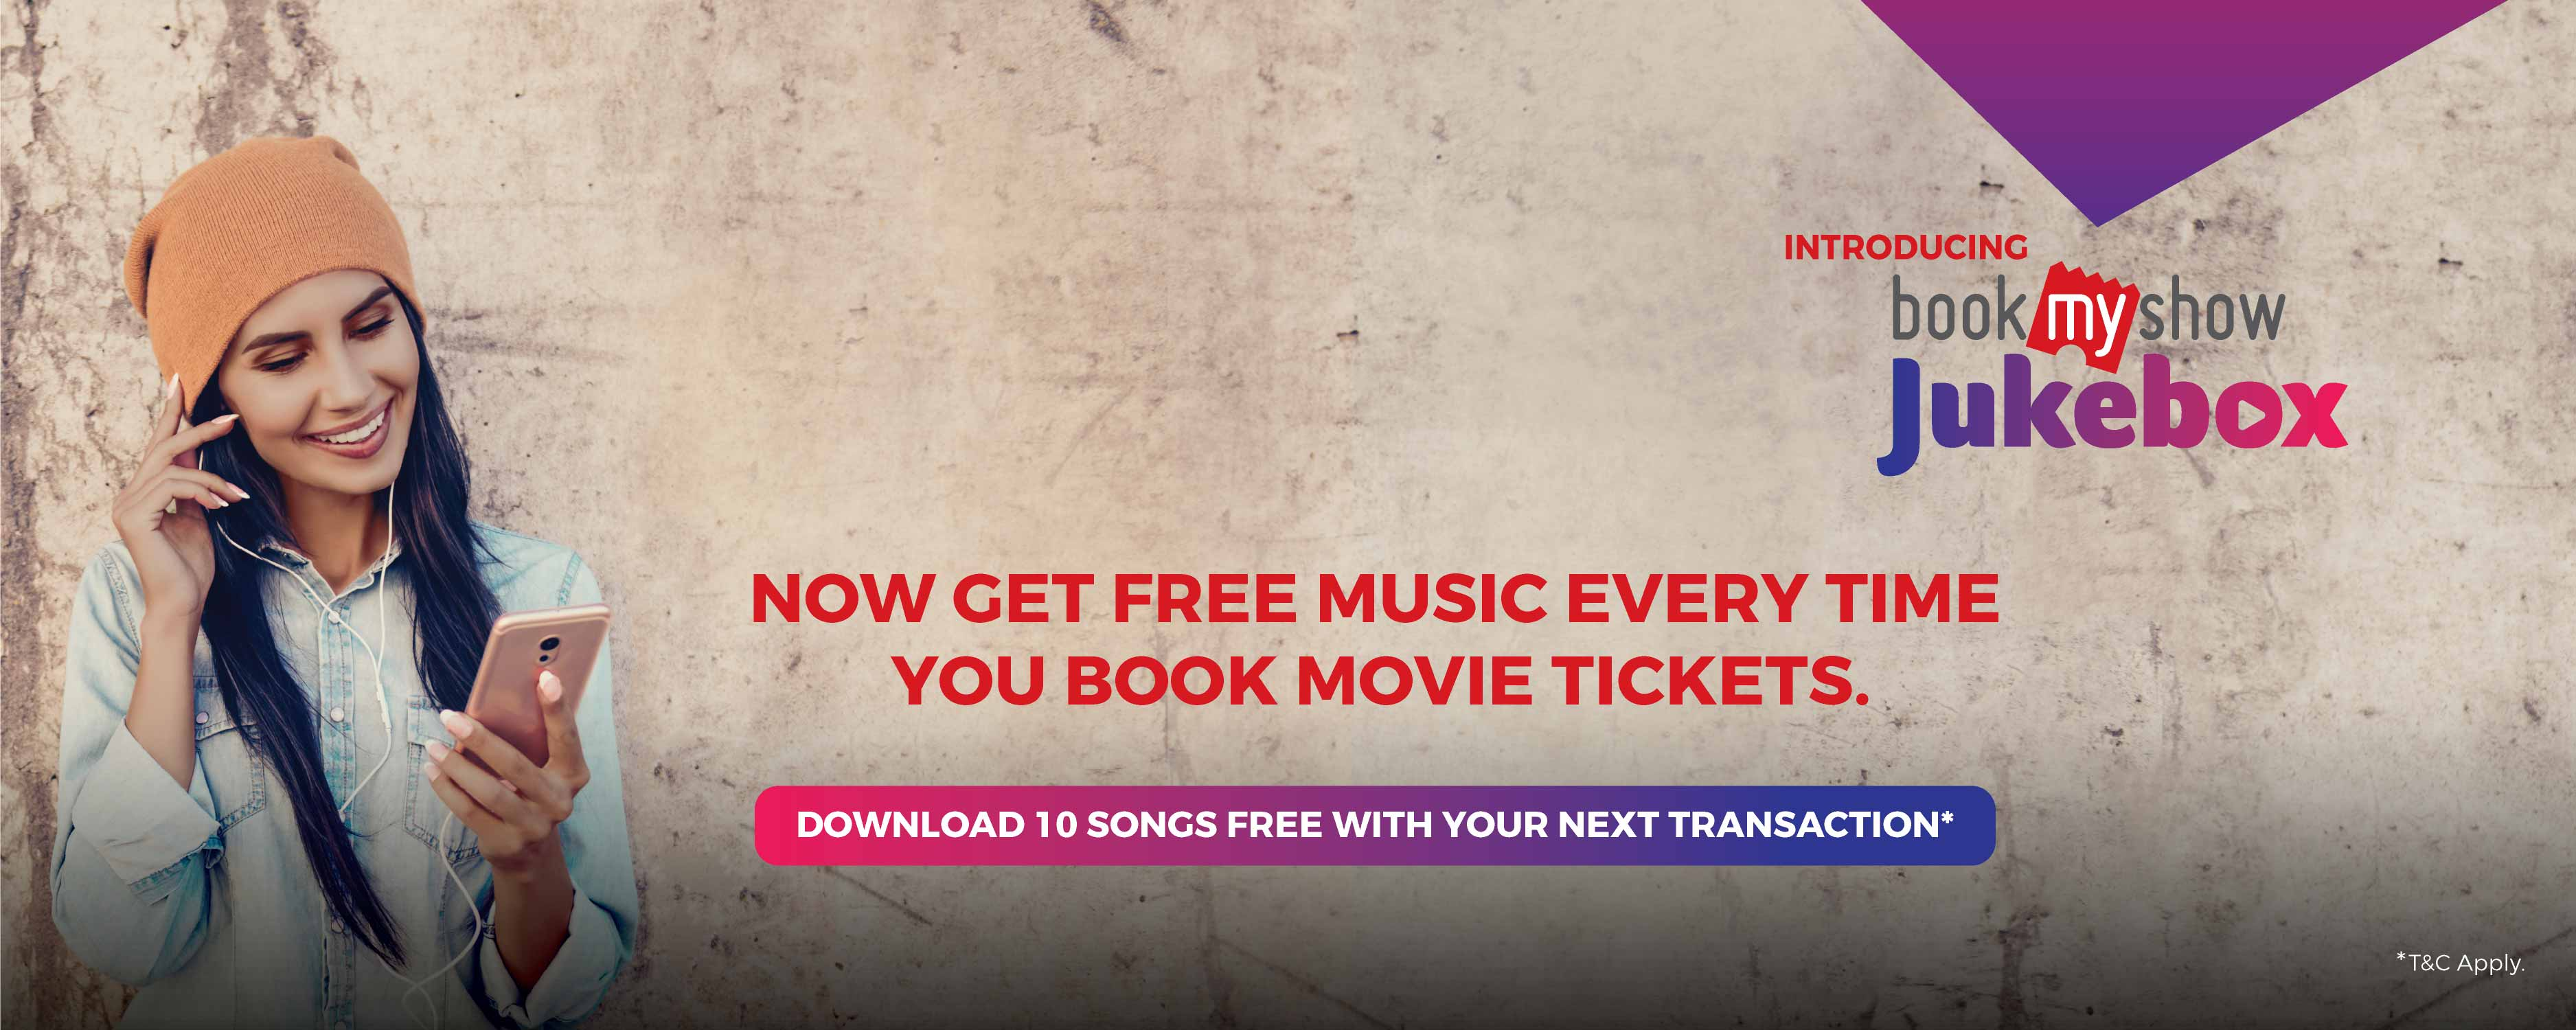 how to cancel my movie tickets in bookmyshow